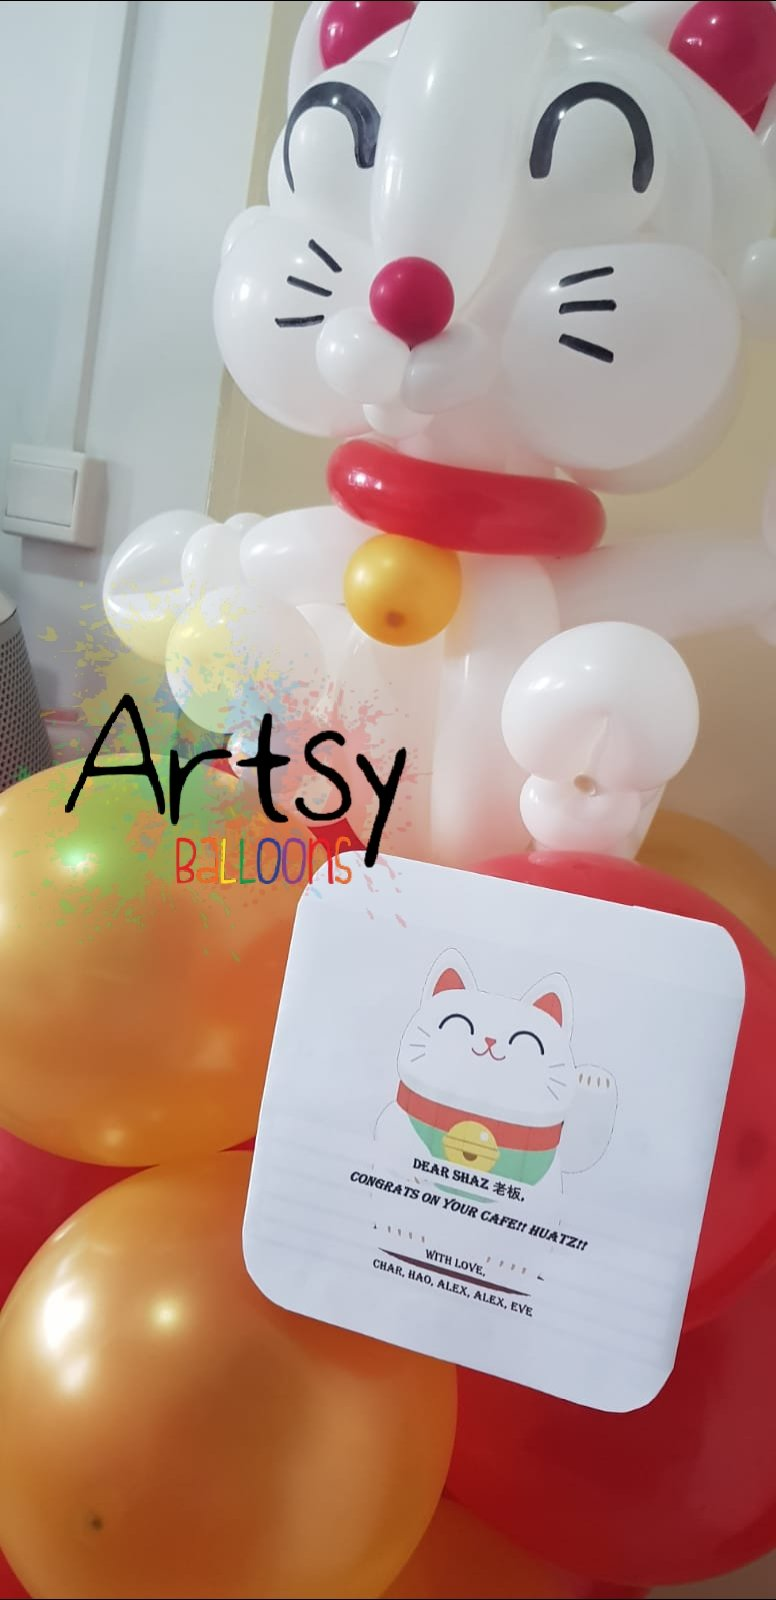 , Grand opening for a cafe! Balloon stands replacing flower stands!, Singapore Balloon Decoration Services - Balloon Workshop and Balloon Sculpting